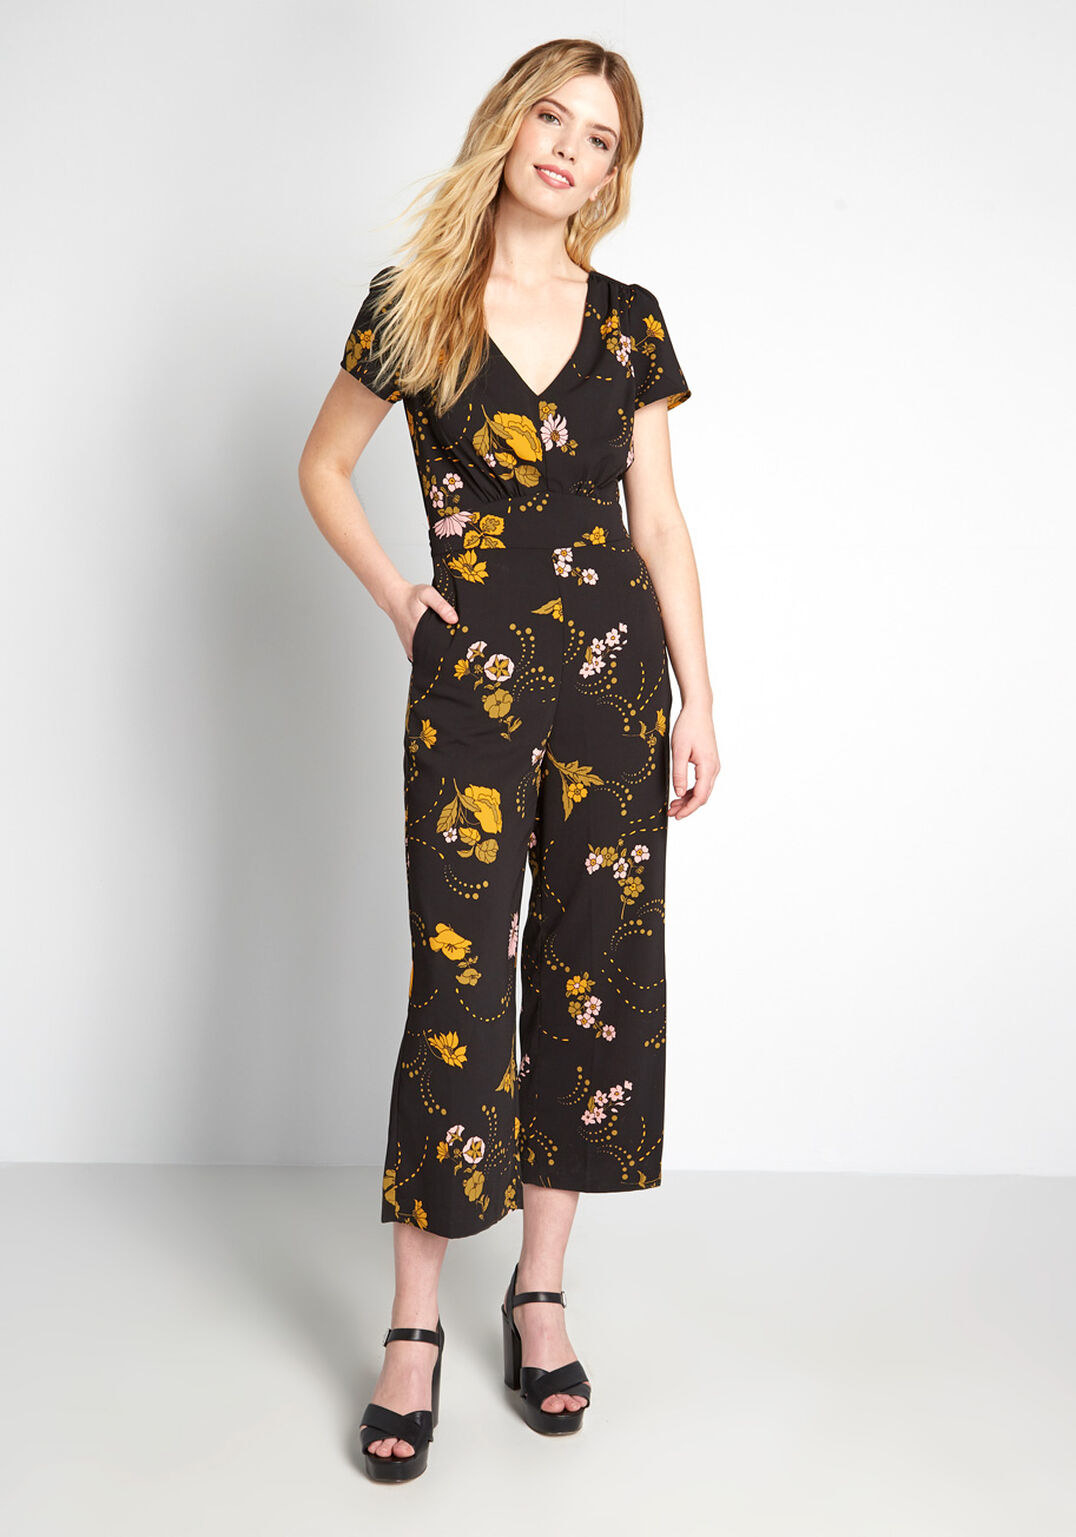 model wearing cropped V-neck black and floral jumpsuit